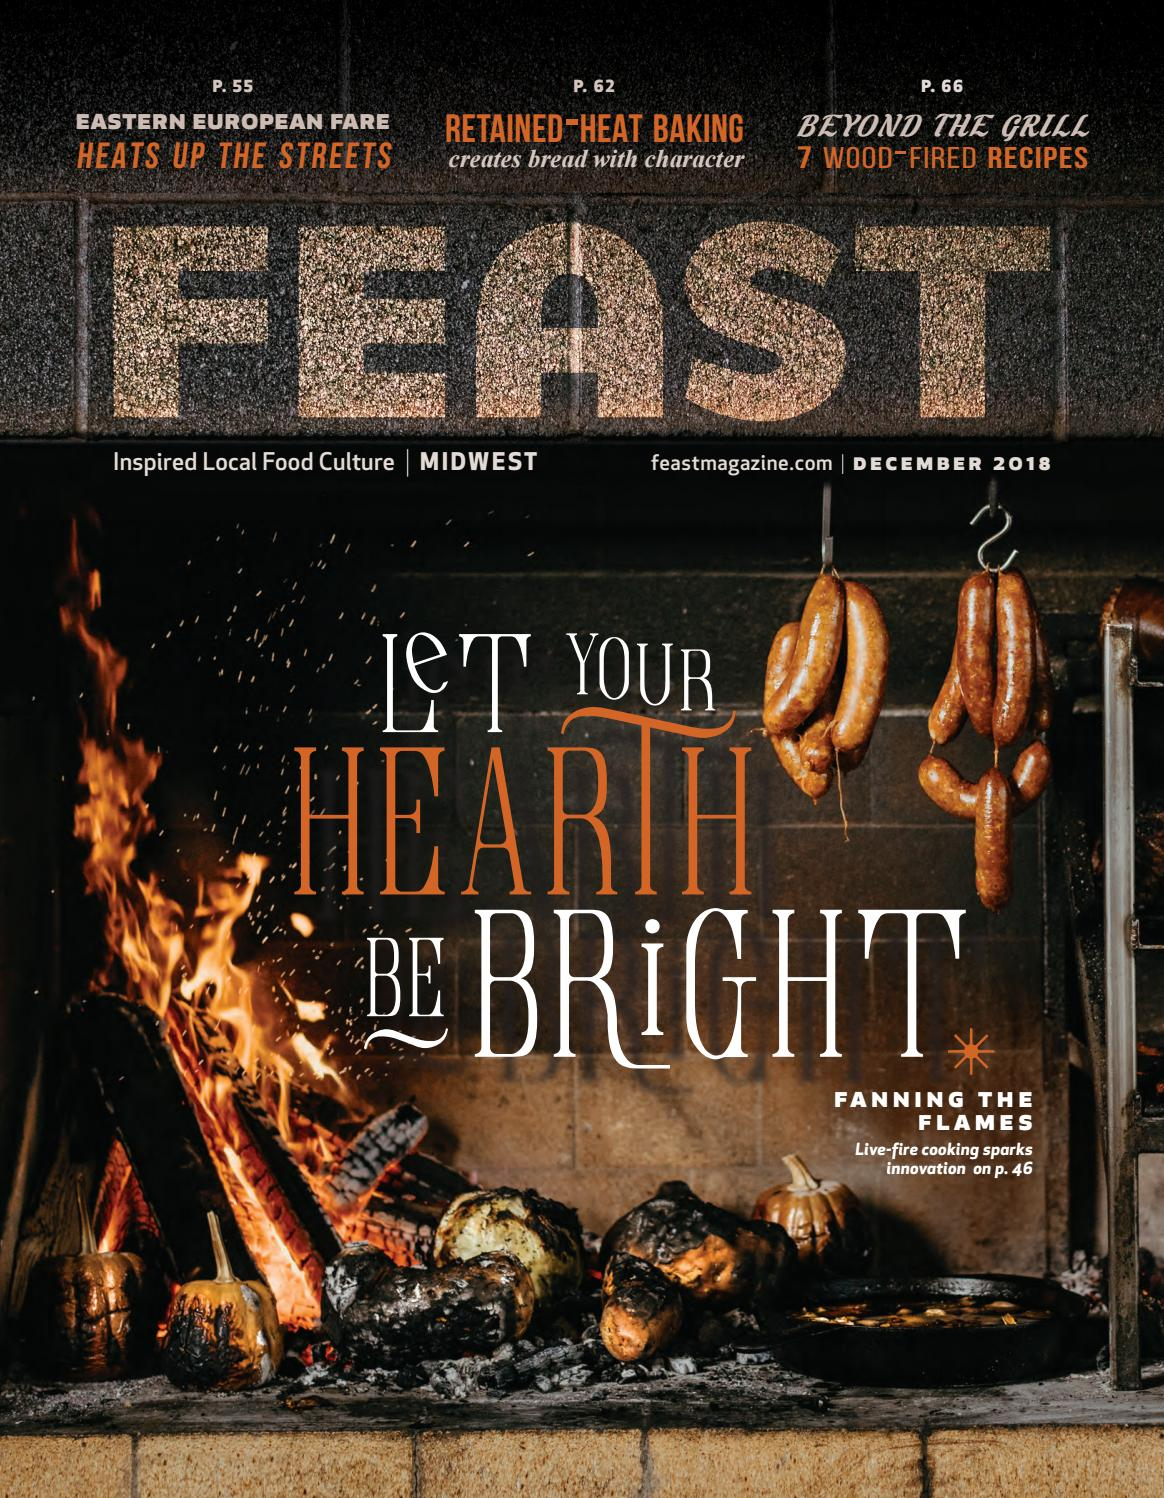 Cuisine Royale Brightness Too High December 2018 Feast Magazine